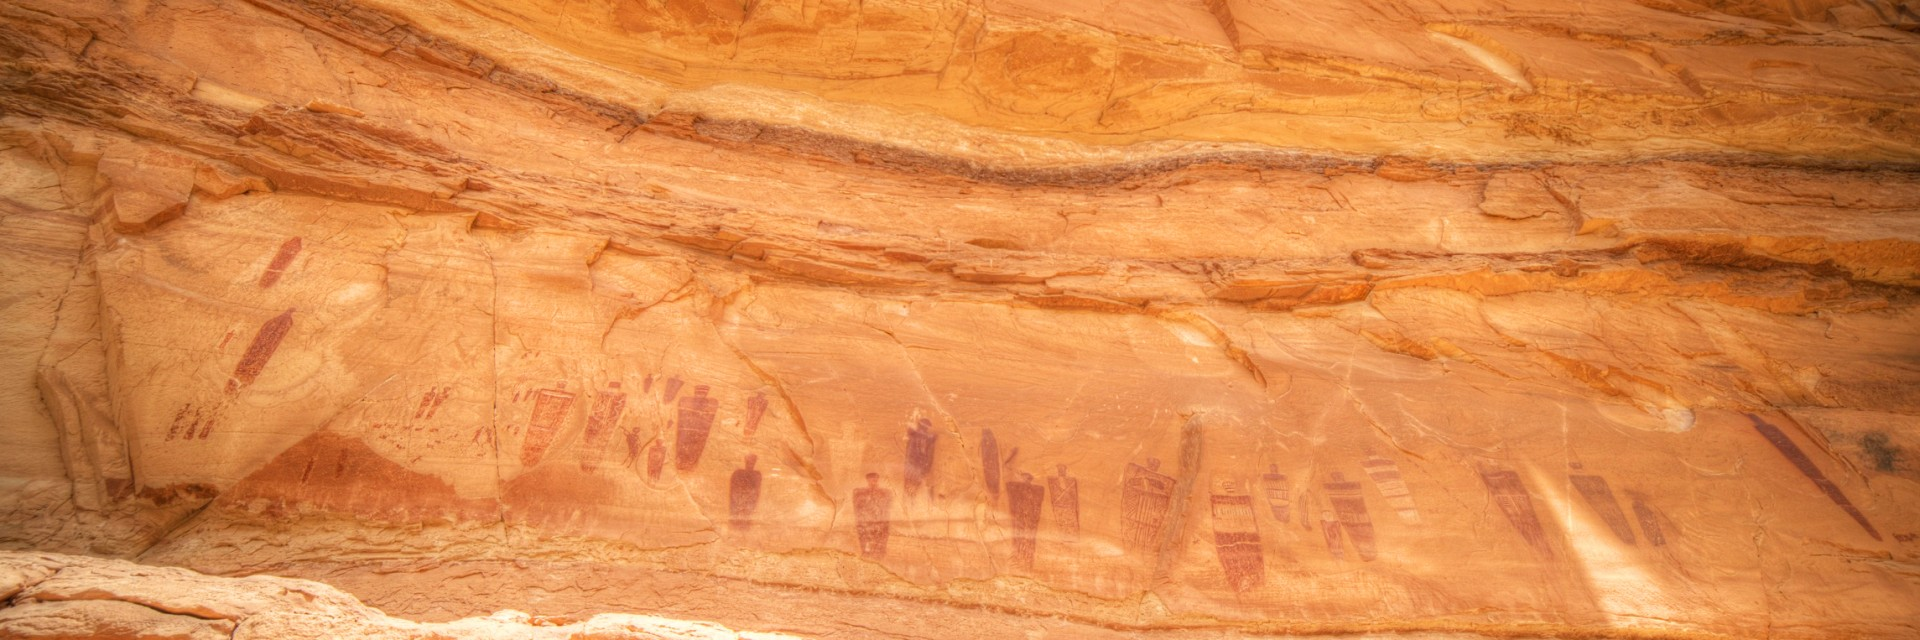 The Great Gallery, Horseshoe Canyon Unit, Canyonlands NP